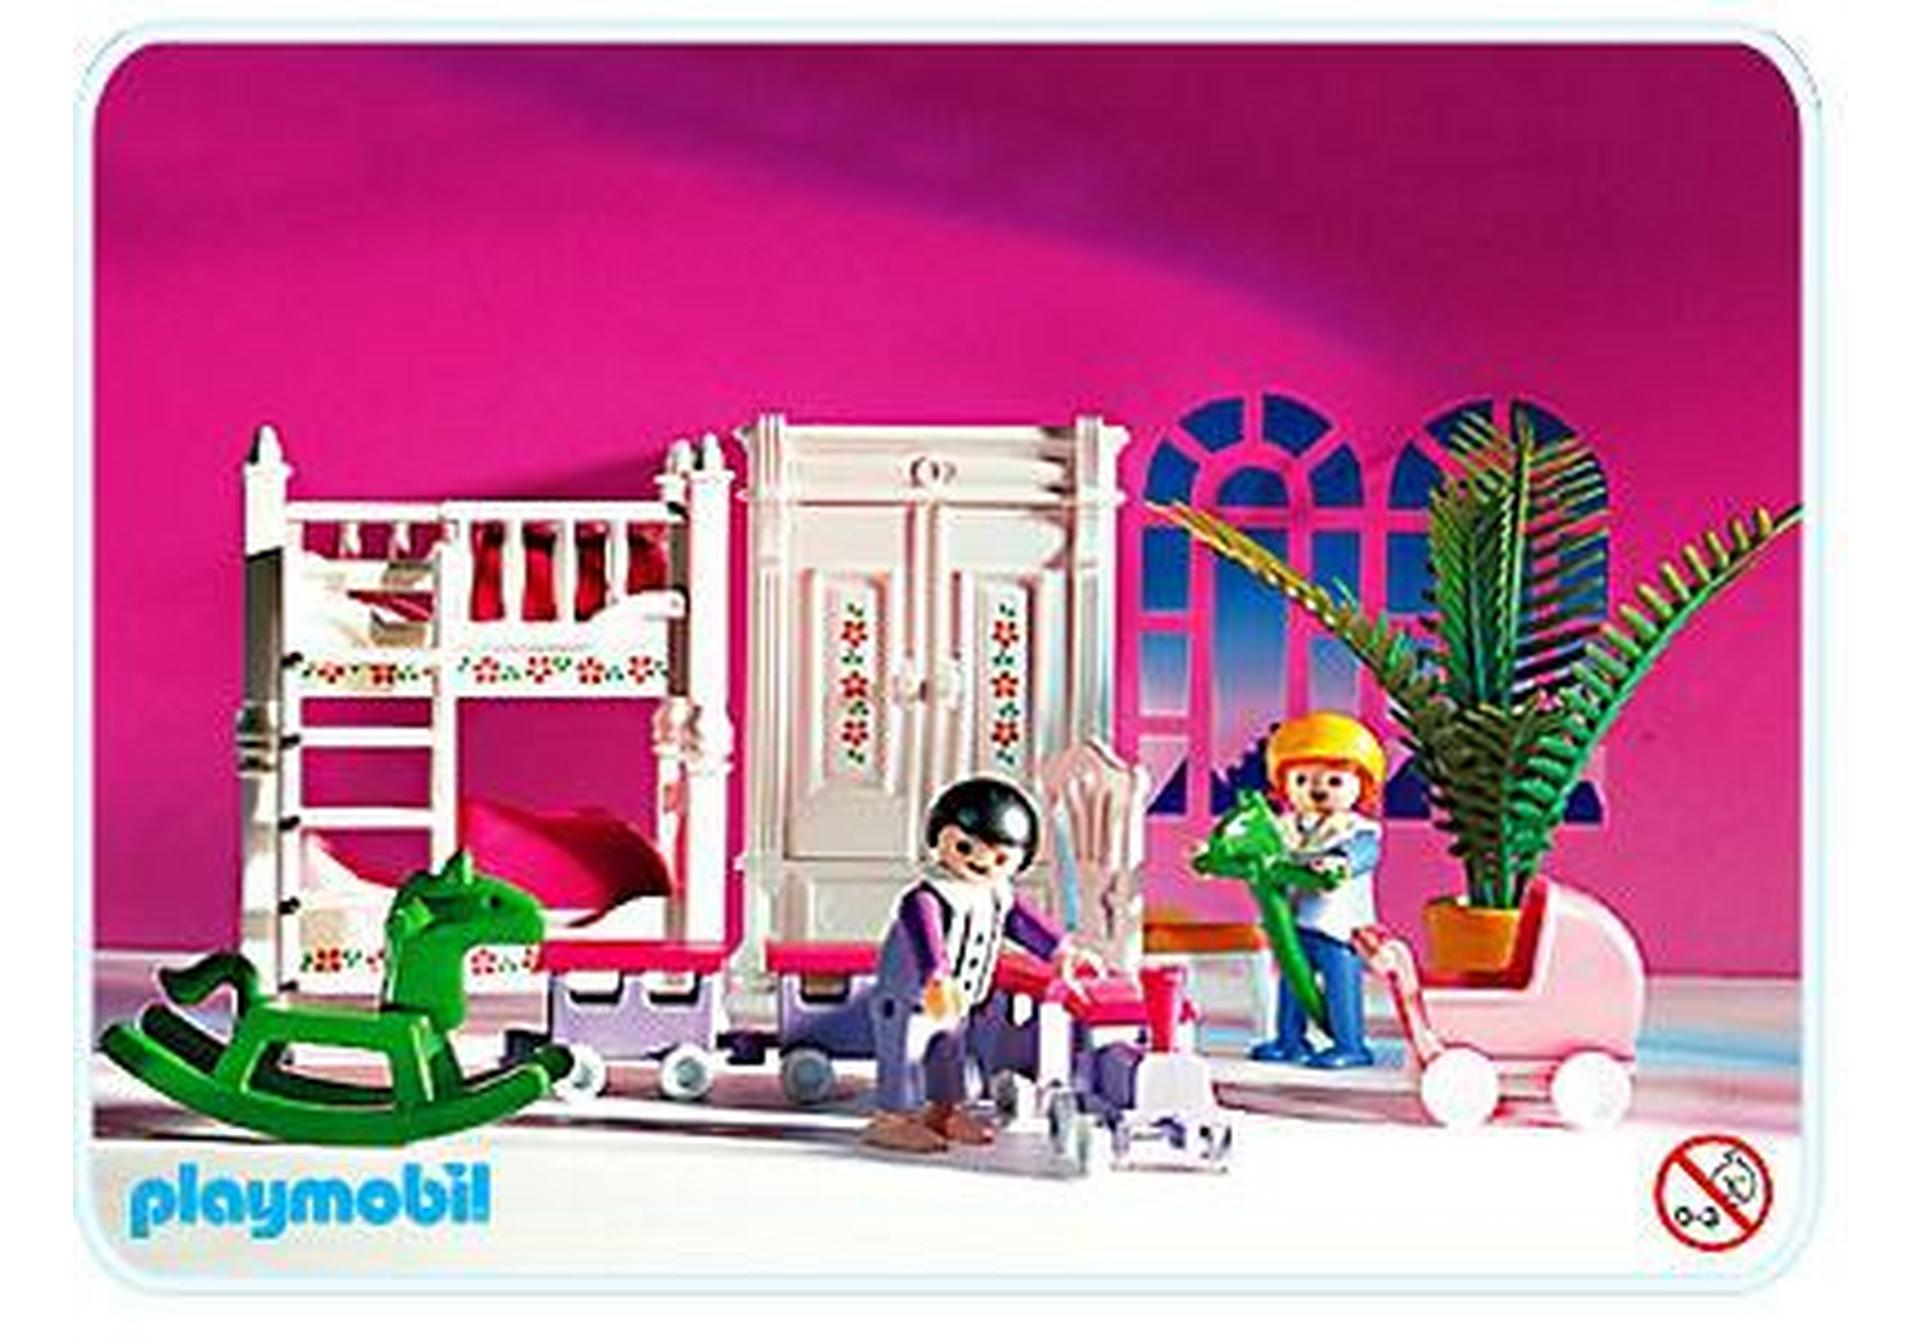 kinderzimmer mit stockbetten 5312 a playmobil. Black Bedroom Furniture Sets. Home Design Ideas